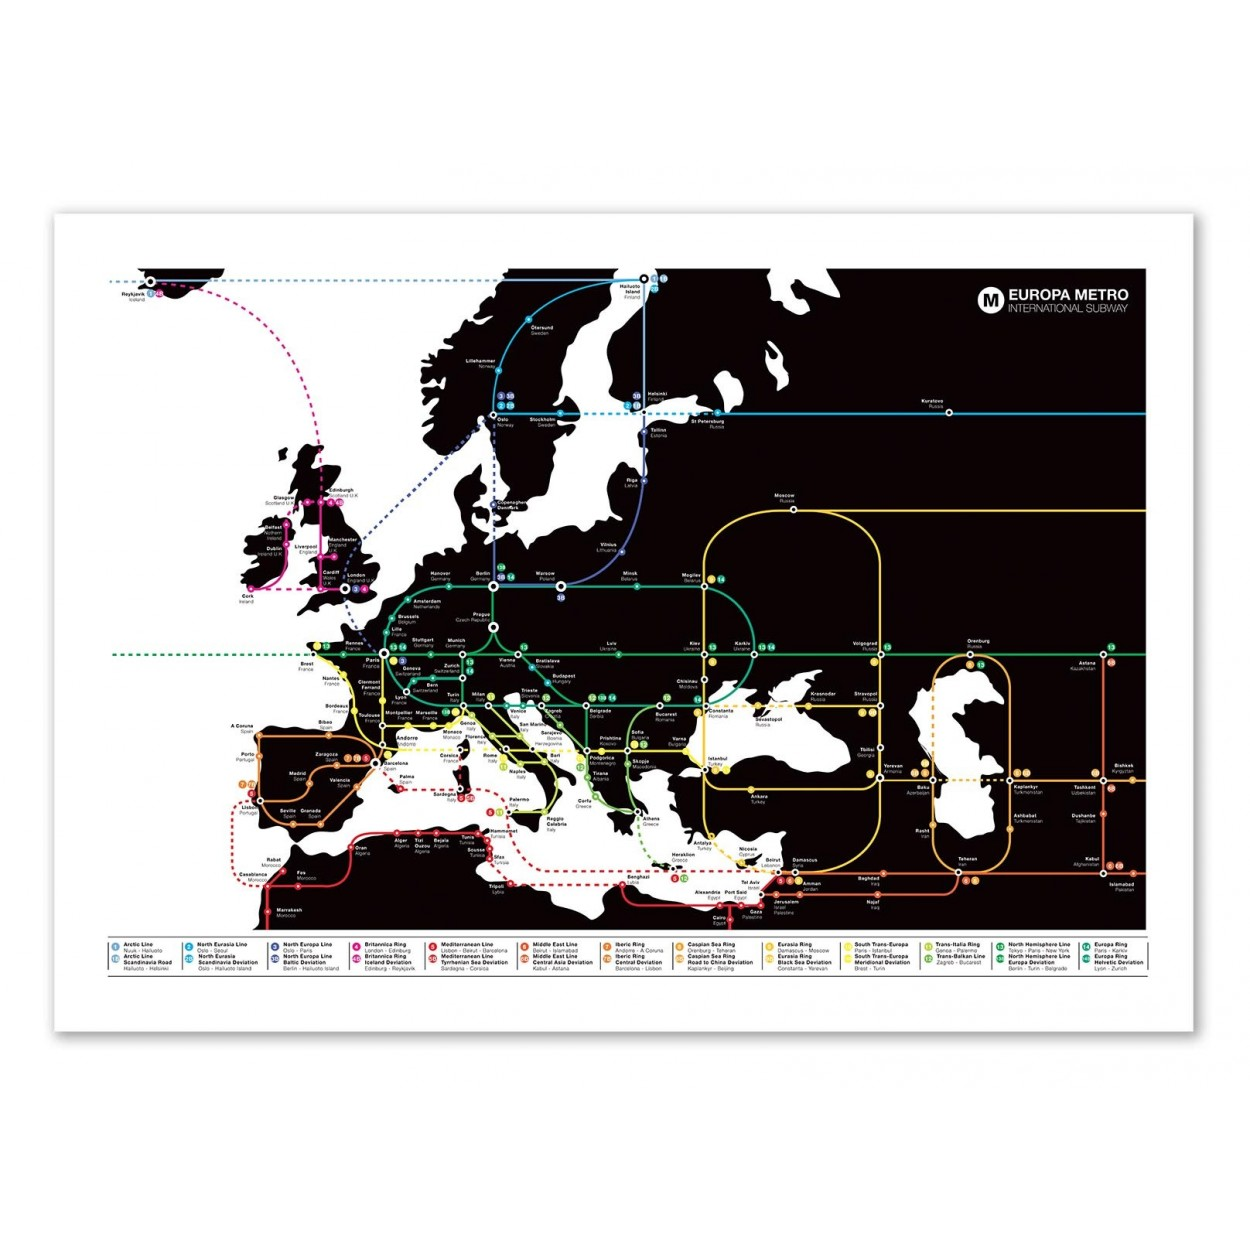 Photo art poster frame and illustration of europa design metro map europa world map olivier bourdereau gumiabroncs Images